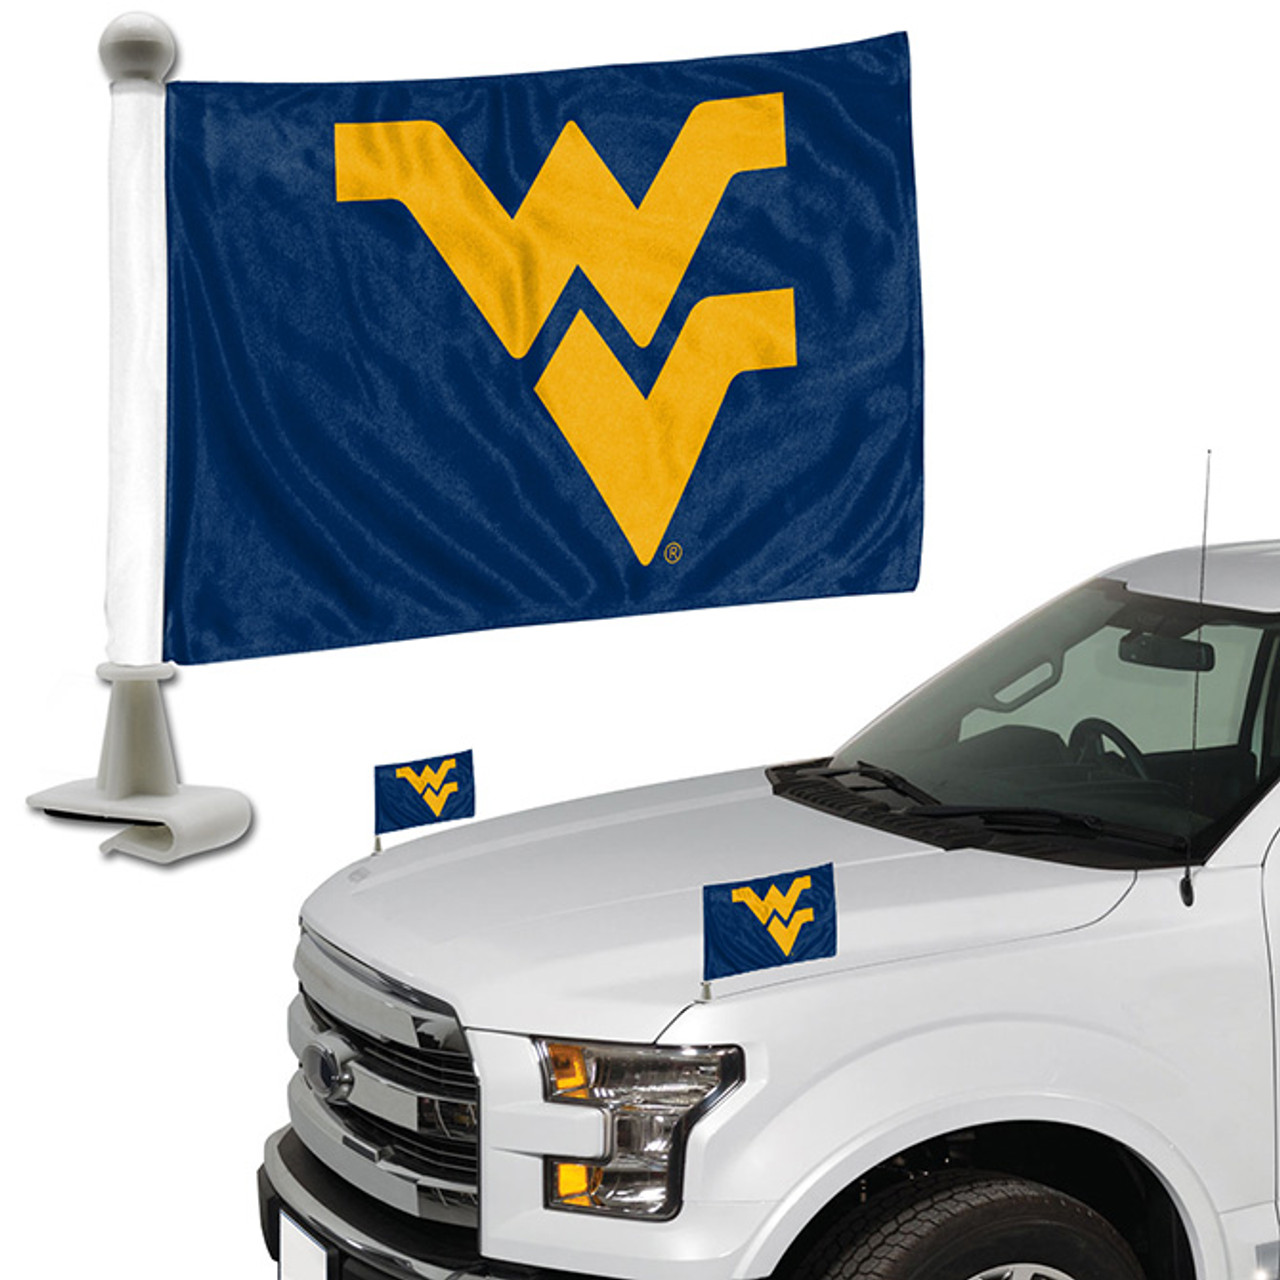 NCAA West Virginia Mountaineers Tailgater Hitch Cover